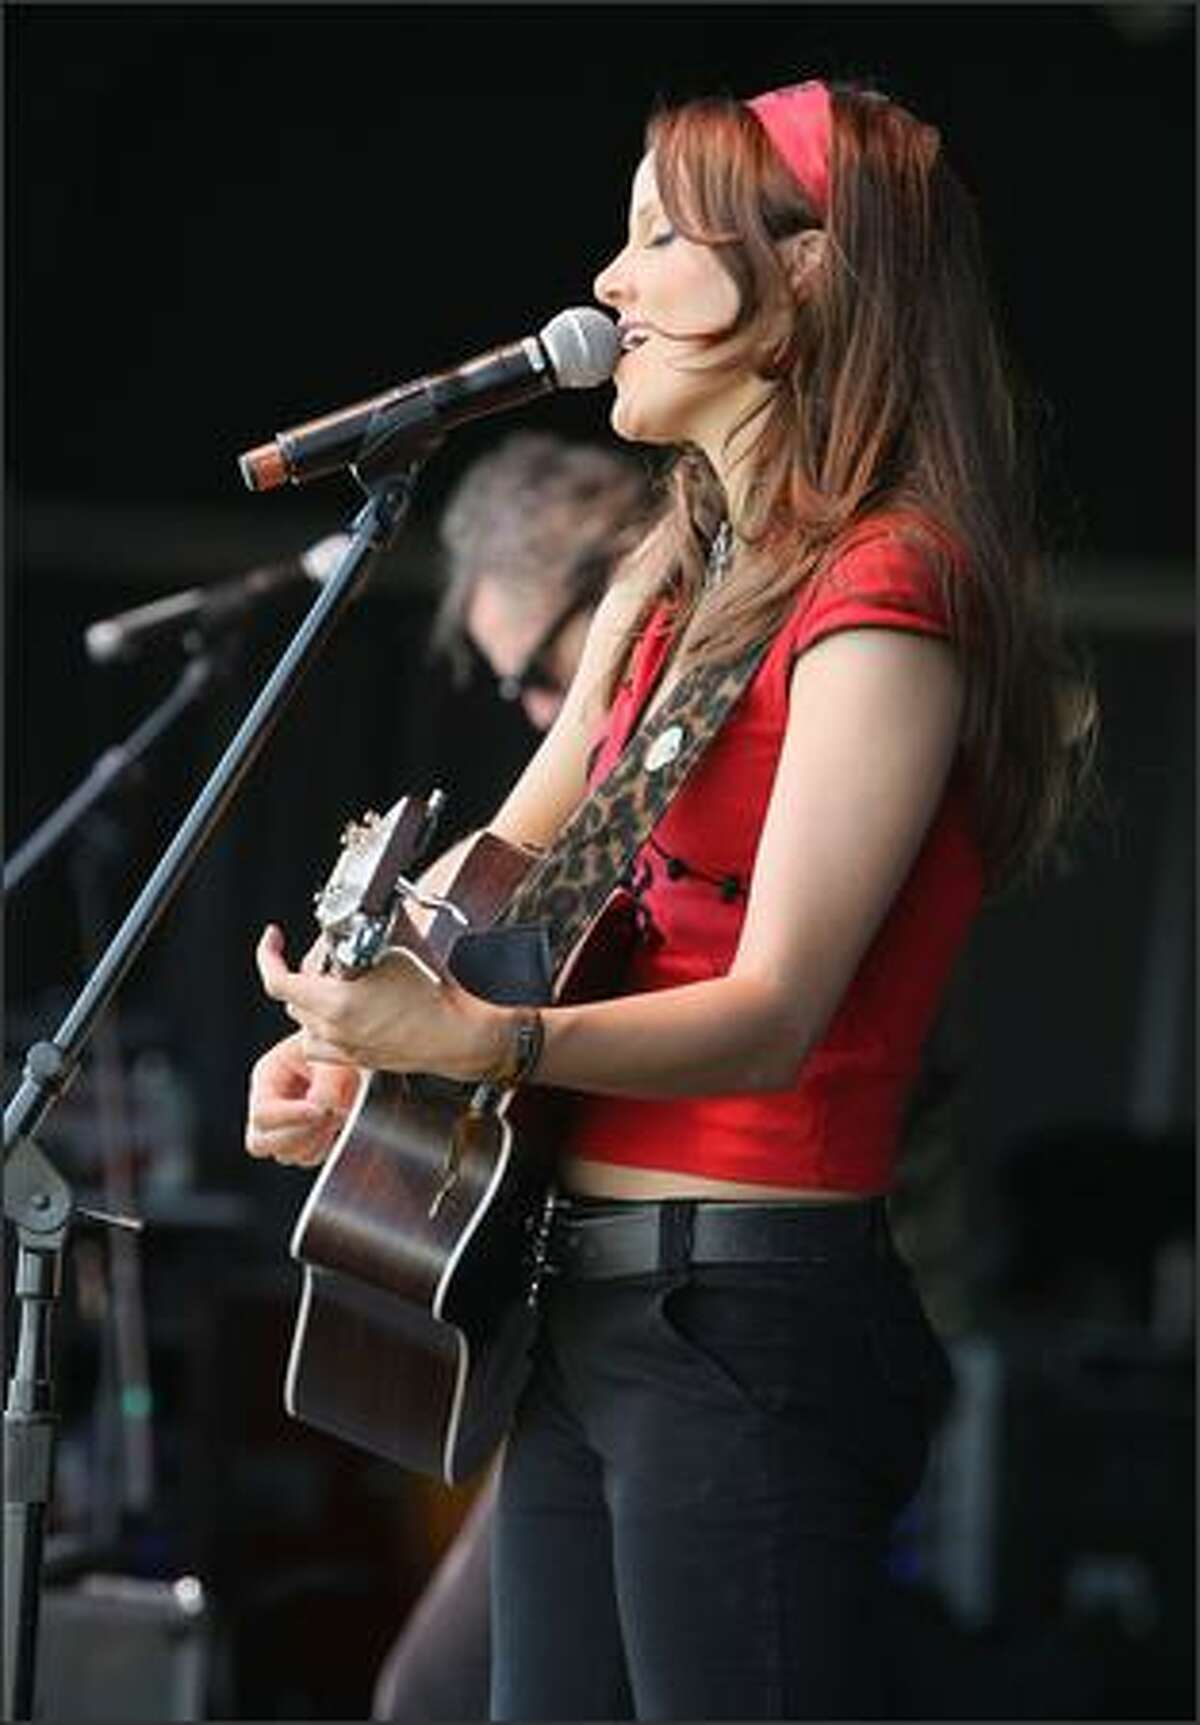 Lily Holbrook performs on stage during the 2008 All Points West Music and Arts Festival at Liberty State Park in Jersey City, New Jersey.